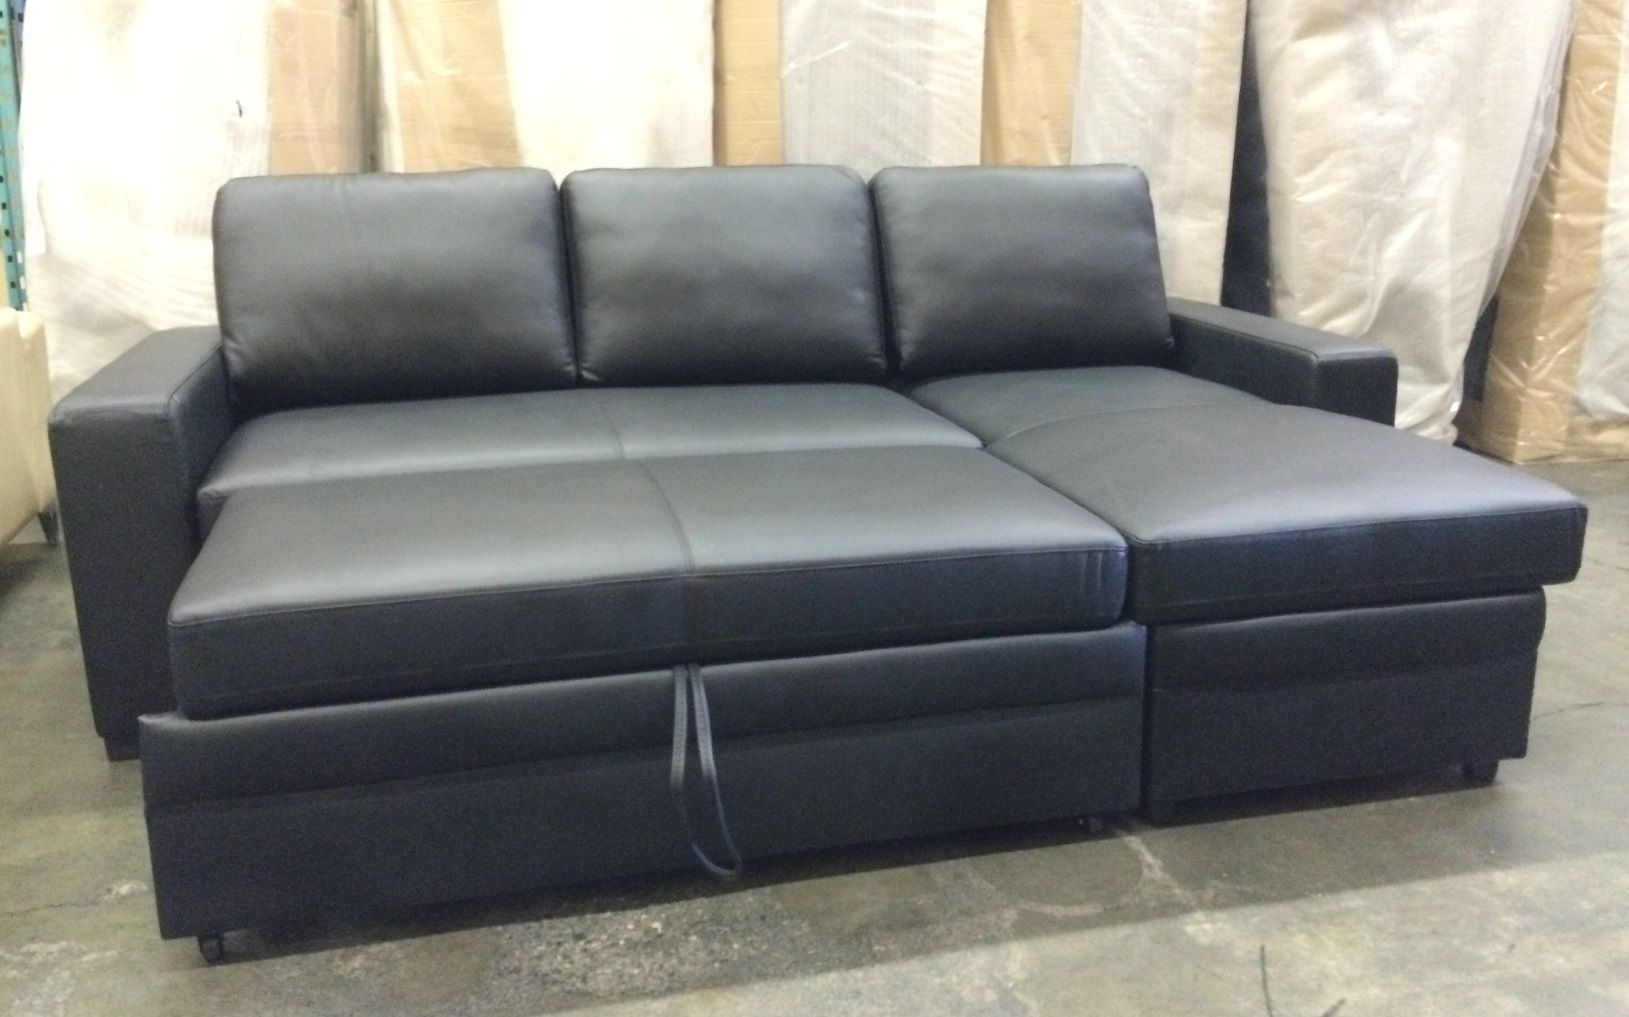 Leather Sectional Sofa Beds | Sofa | Sofa, Sectional sofa ...